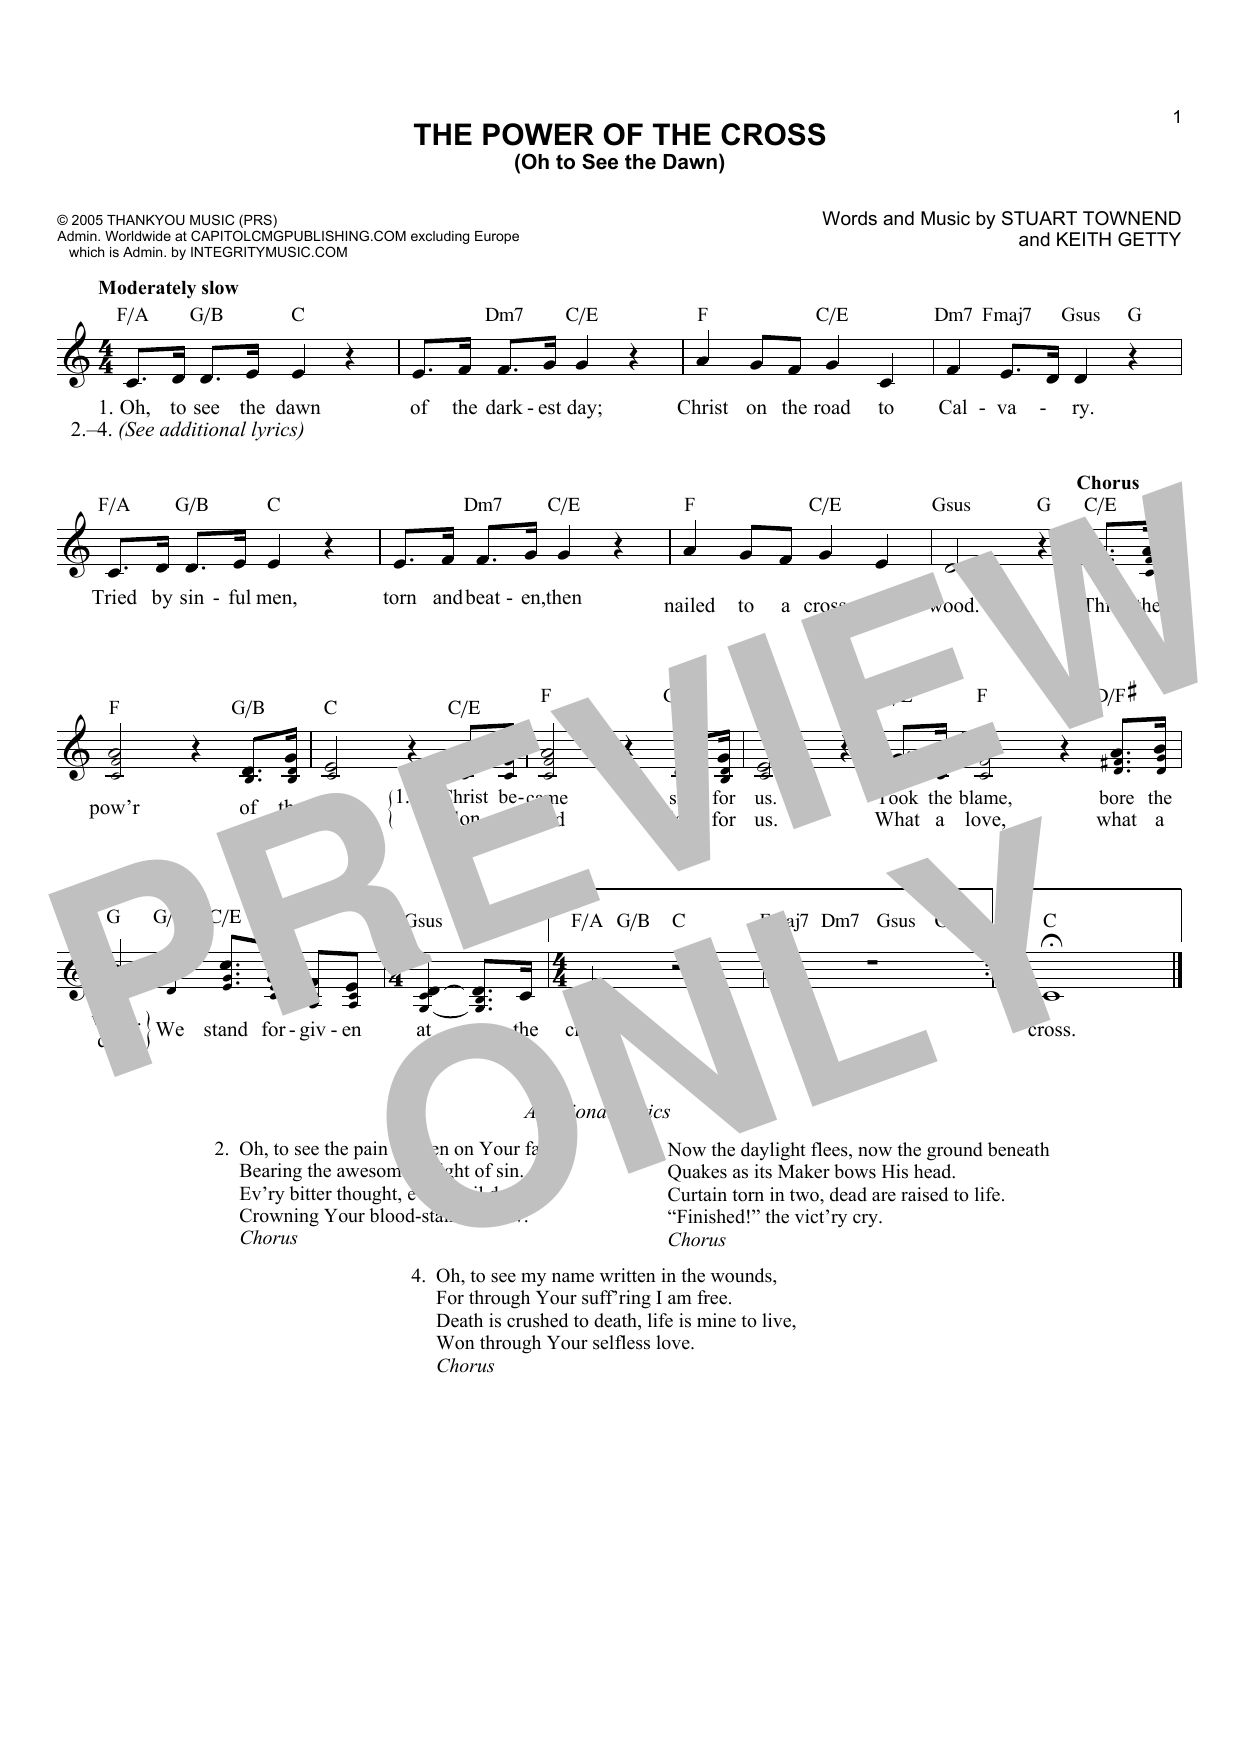 Keith Getty The Power Of The Cross Oh To See The Dawn Sheet Music Notes,  Chords   Download Printable Lead Sheet / Fake Book PDF Score   SKU 15